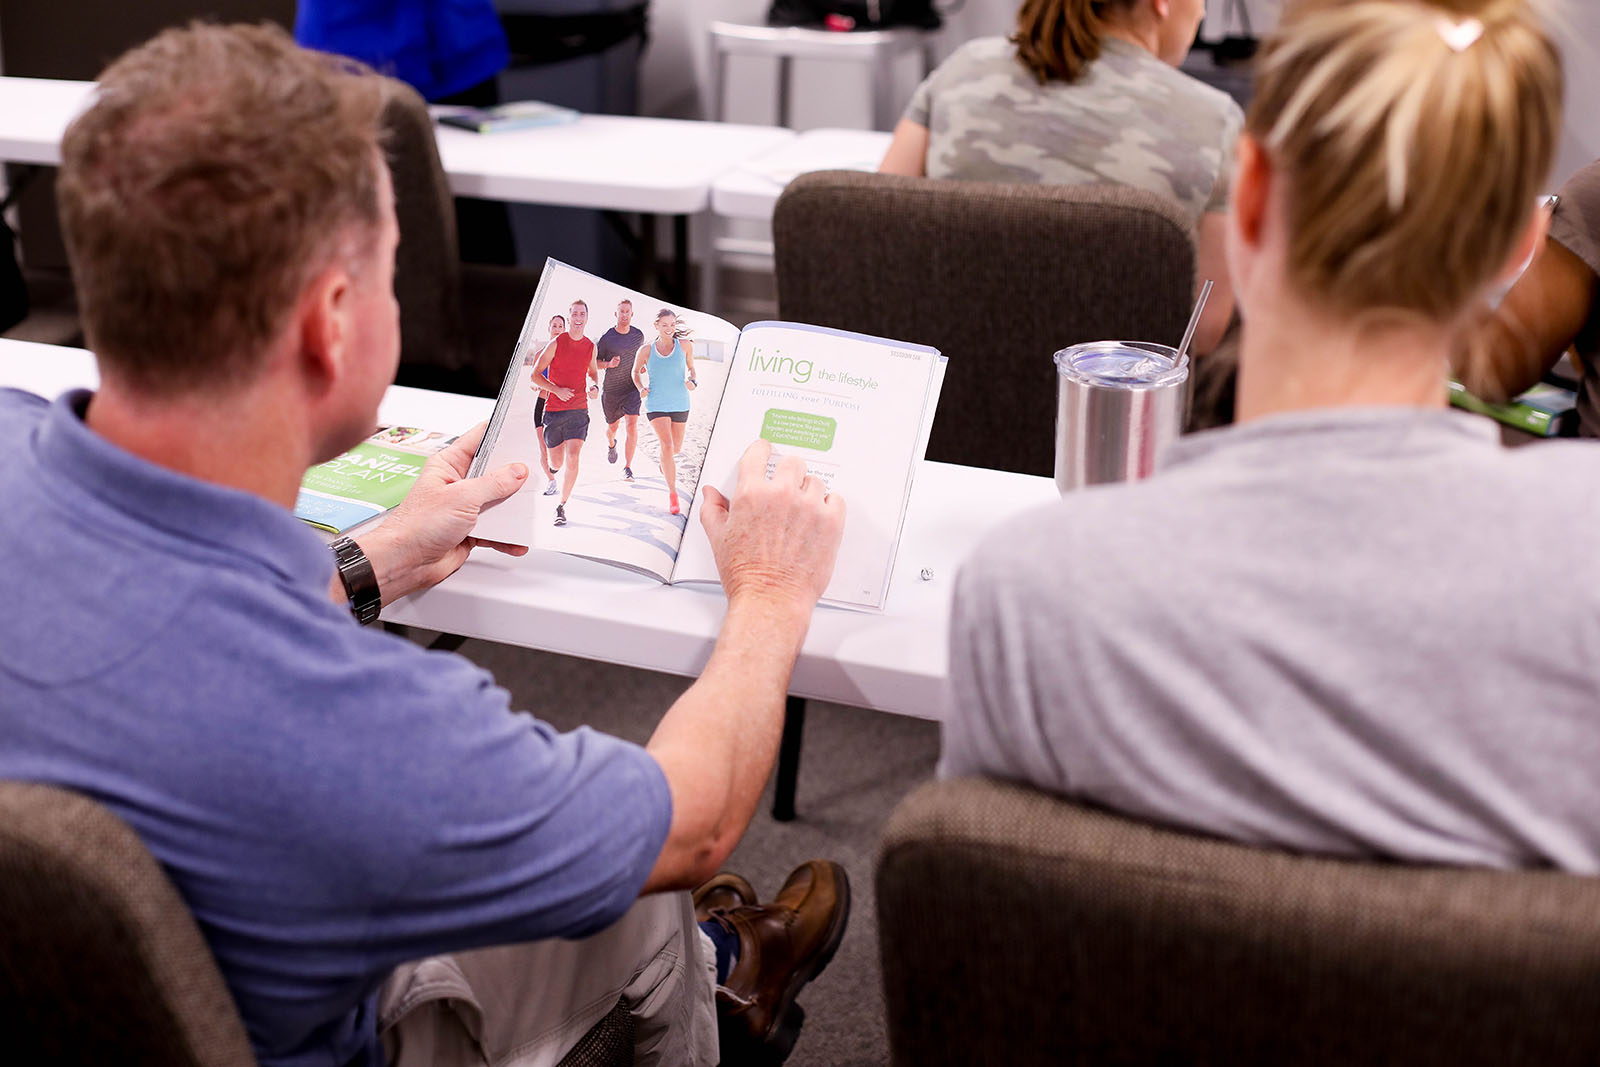 Group Writing Team - Are you a creative and enjoy researching and writing? As a member of the Group Writing Team you will create devotionals, small group resources, and other discipleship tools for group members and facilitators.